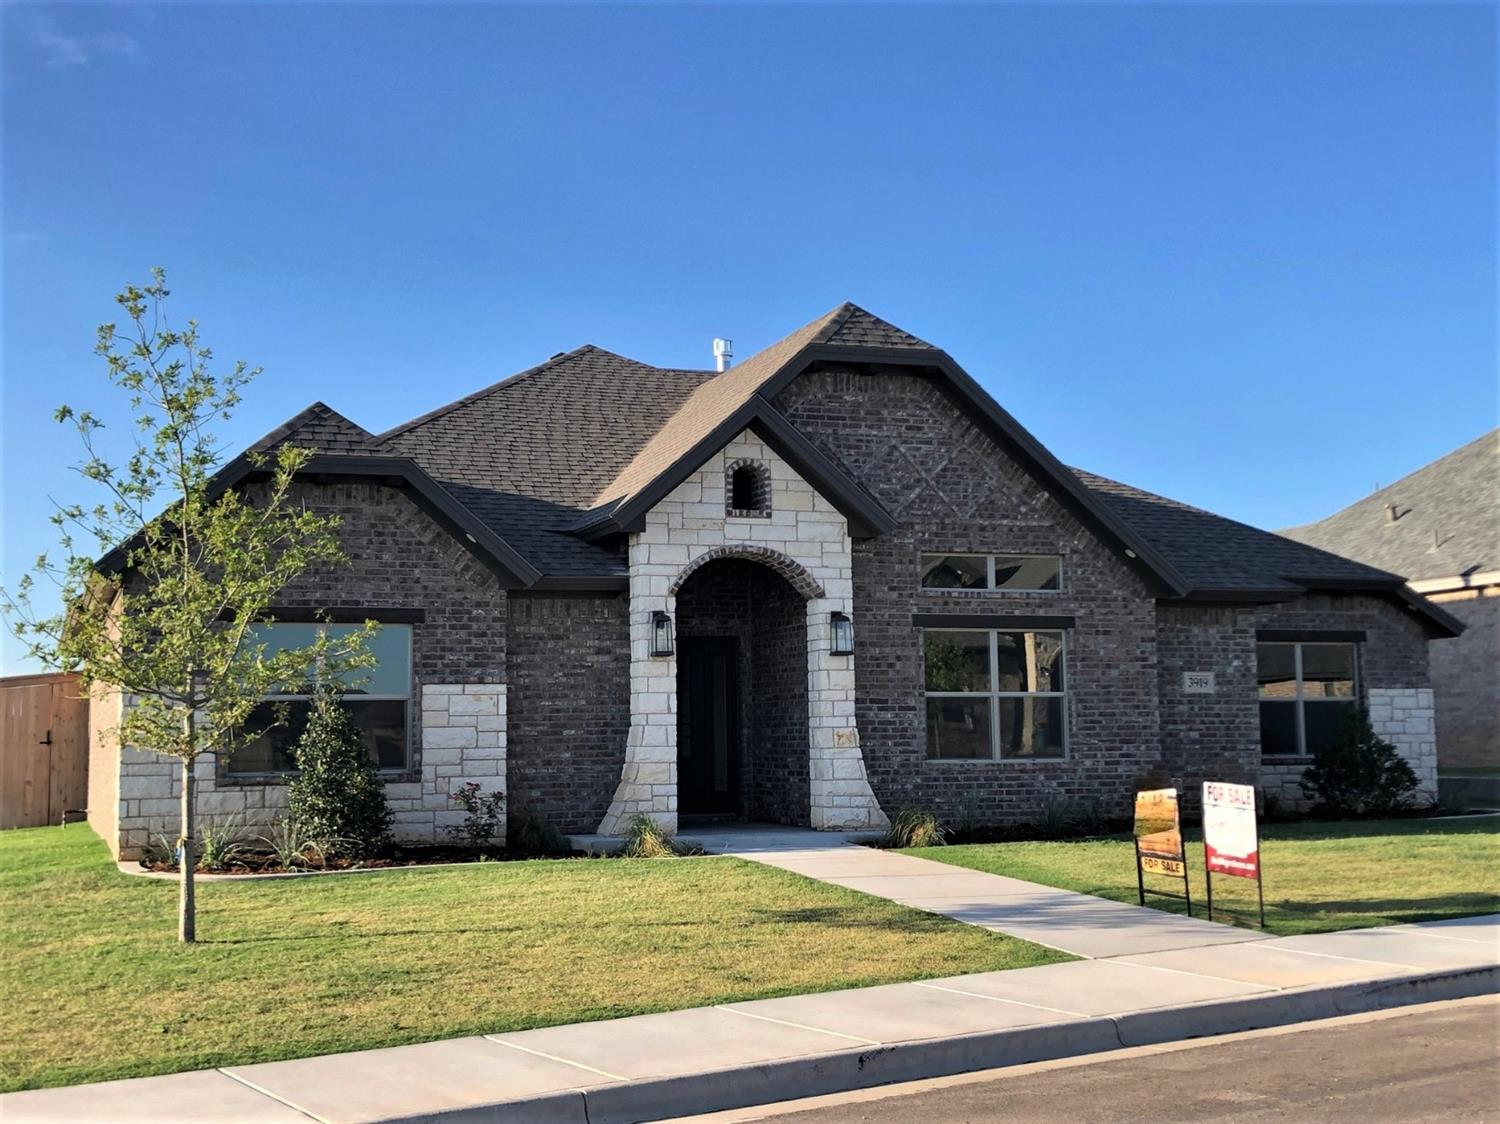 This beautiful home is located in the highly desirable Brooke Heights Addition. It features lots of natural light in the Family room, and kitchen. The family room is spacious, with a fireplace and beamed ceiling. The kitchen is large with loads of beautiful painted cabinets, and a huge pantry. The master features a boxed ceiling, and the master bath has a large separate shower with beautiful tile work, and a huge walk in closet. The patio is covered, and is large enough for entertaining. The yard has sod and sprinkler system all around. The back yard is surrounded with a 7 foot capped cedar fence. This home is priced right, and won't last long. So don't let this beauty get away!